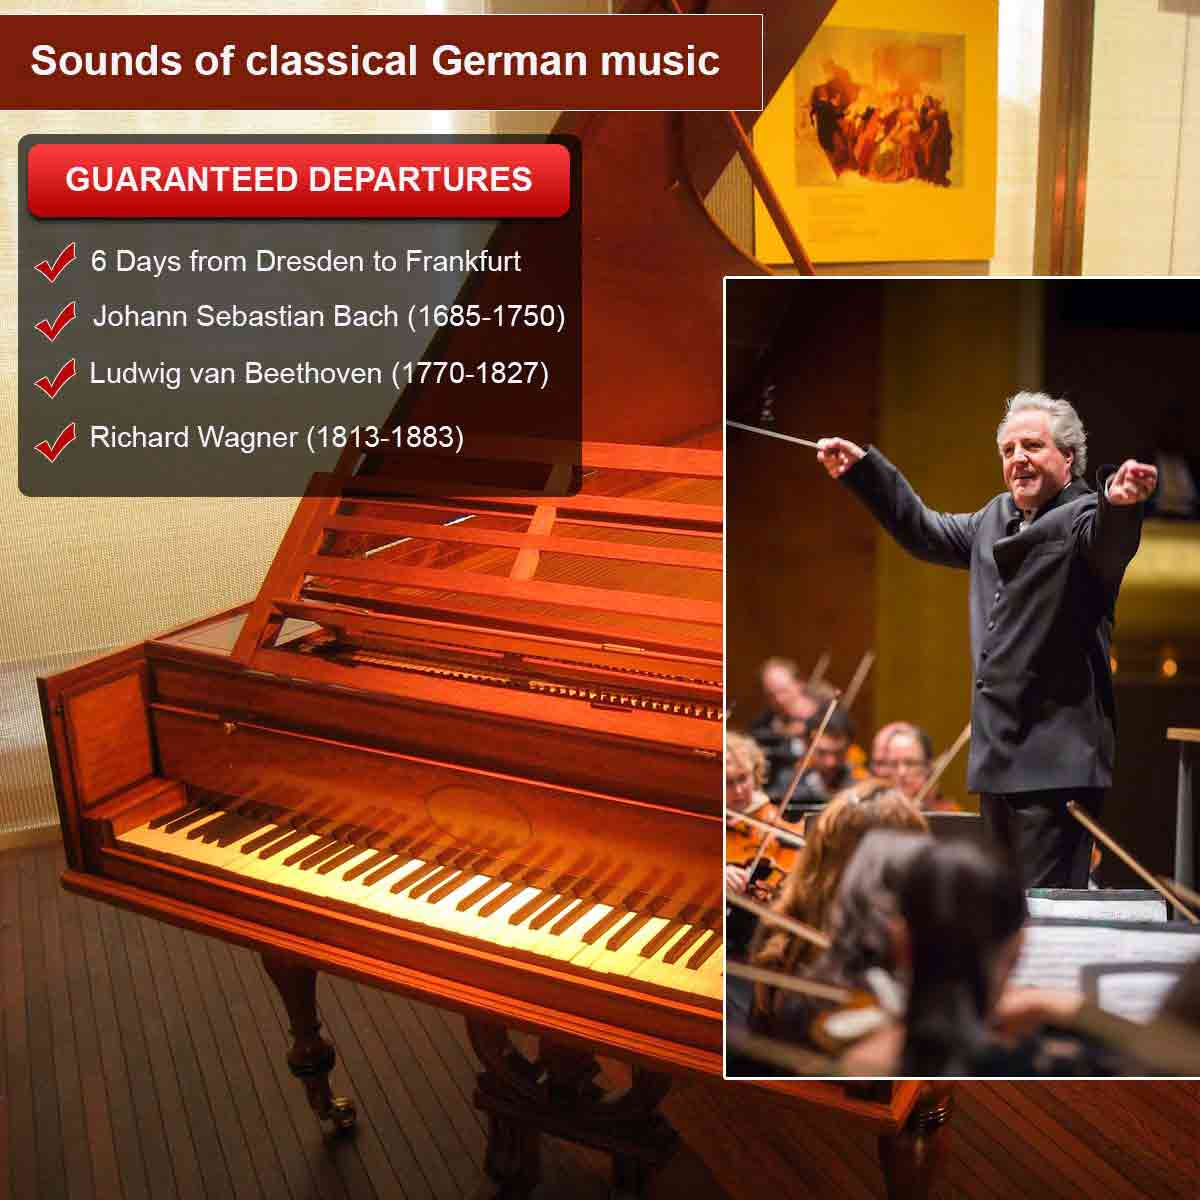 Sounds of classical German music